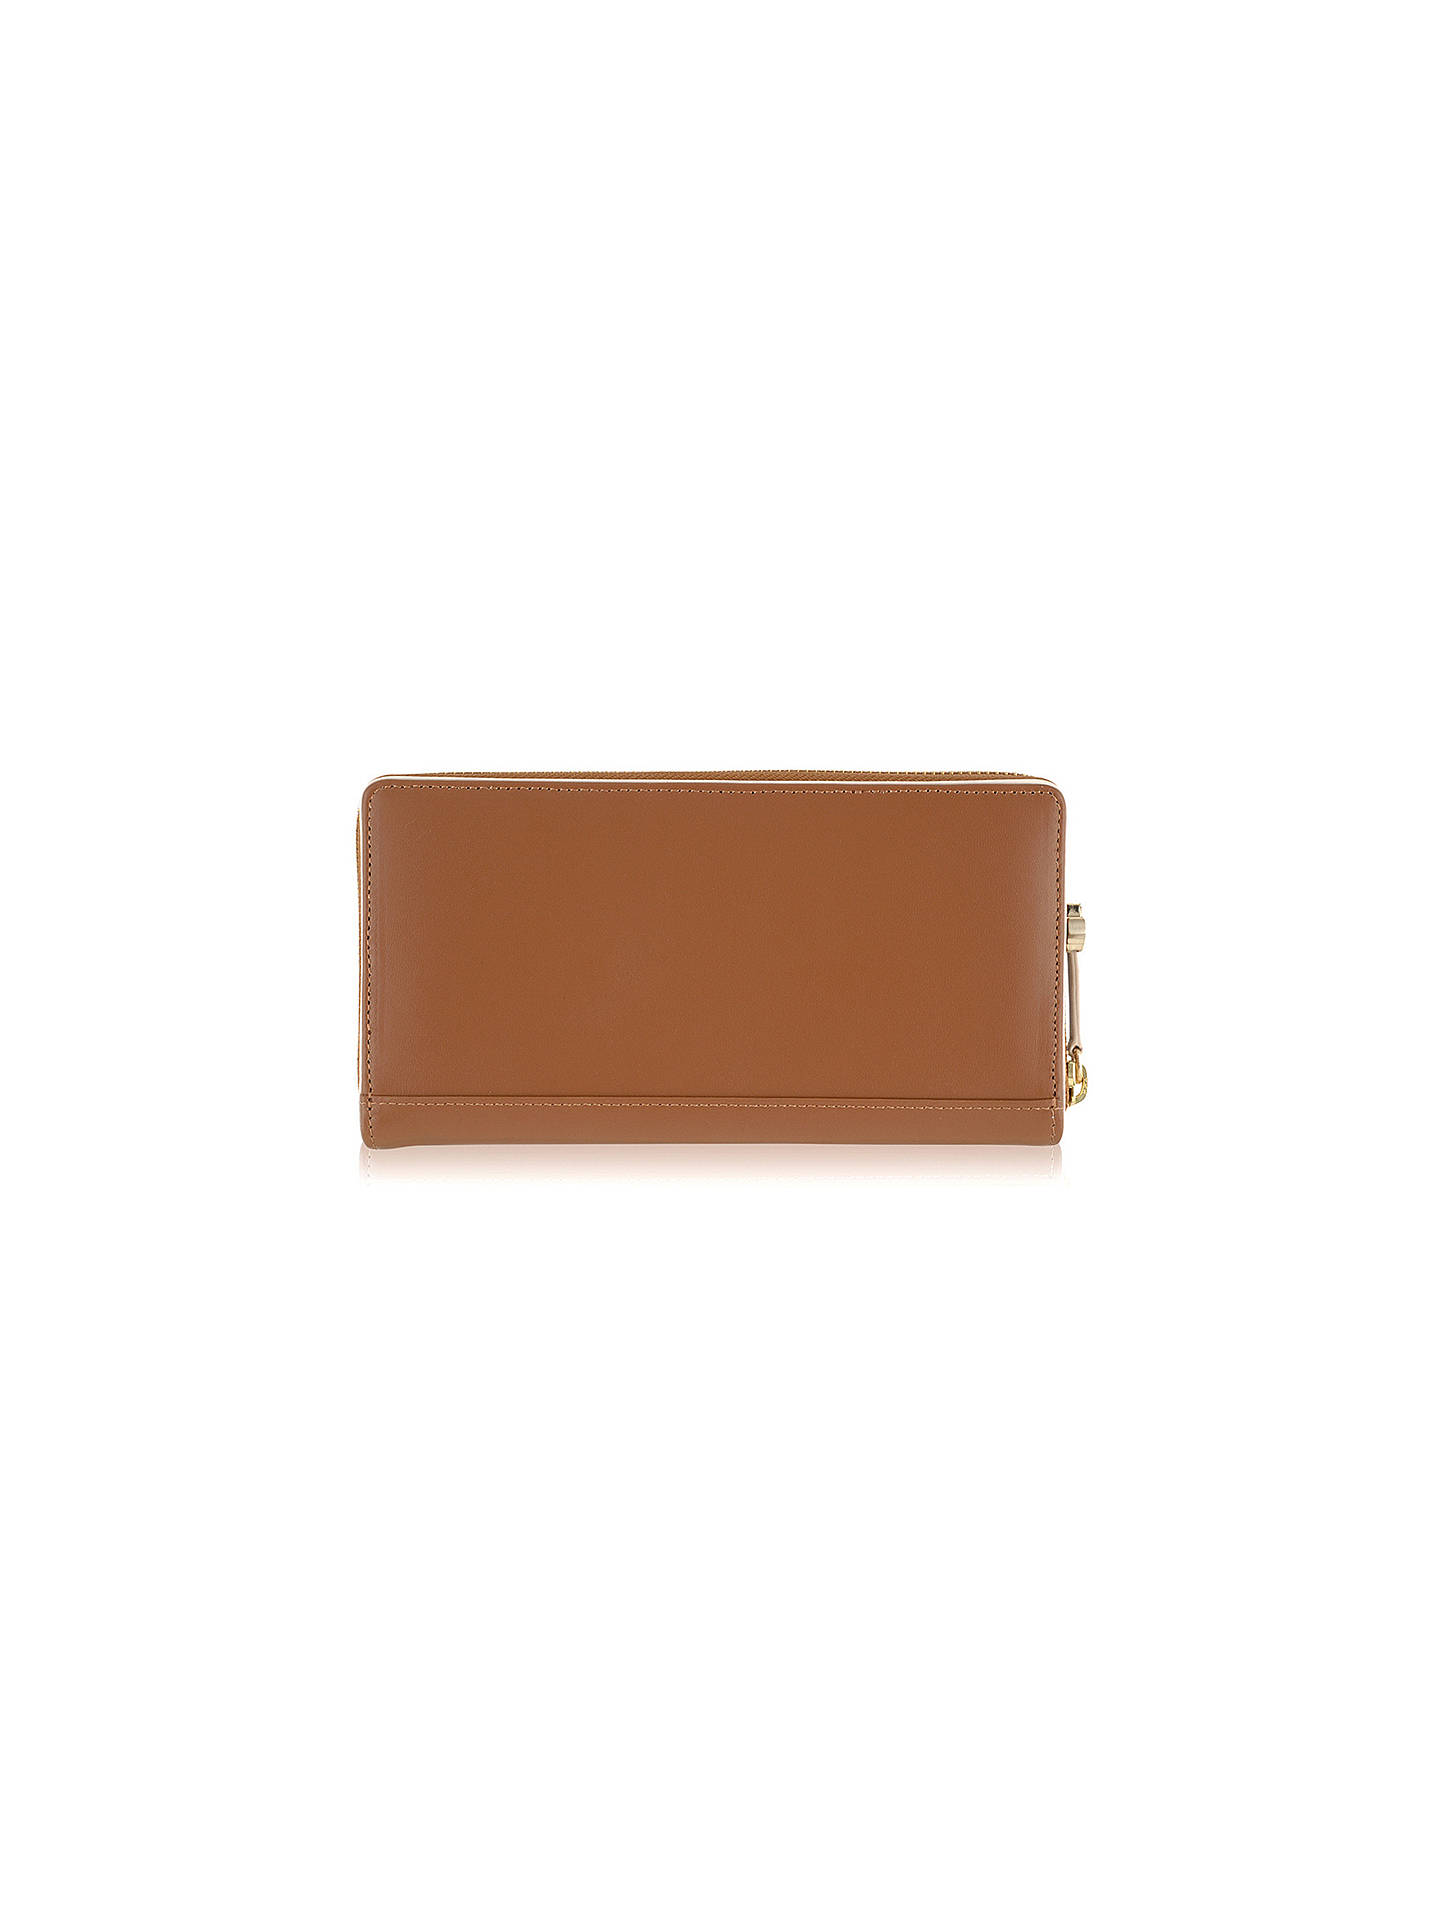 BuyRadley Arlington Street Leather Matinee Purse, Tan Online at johnlewis.com